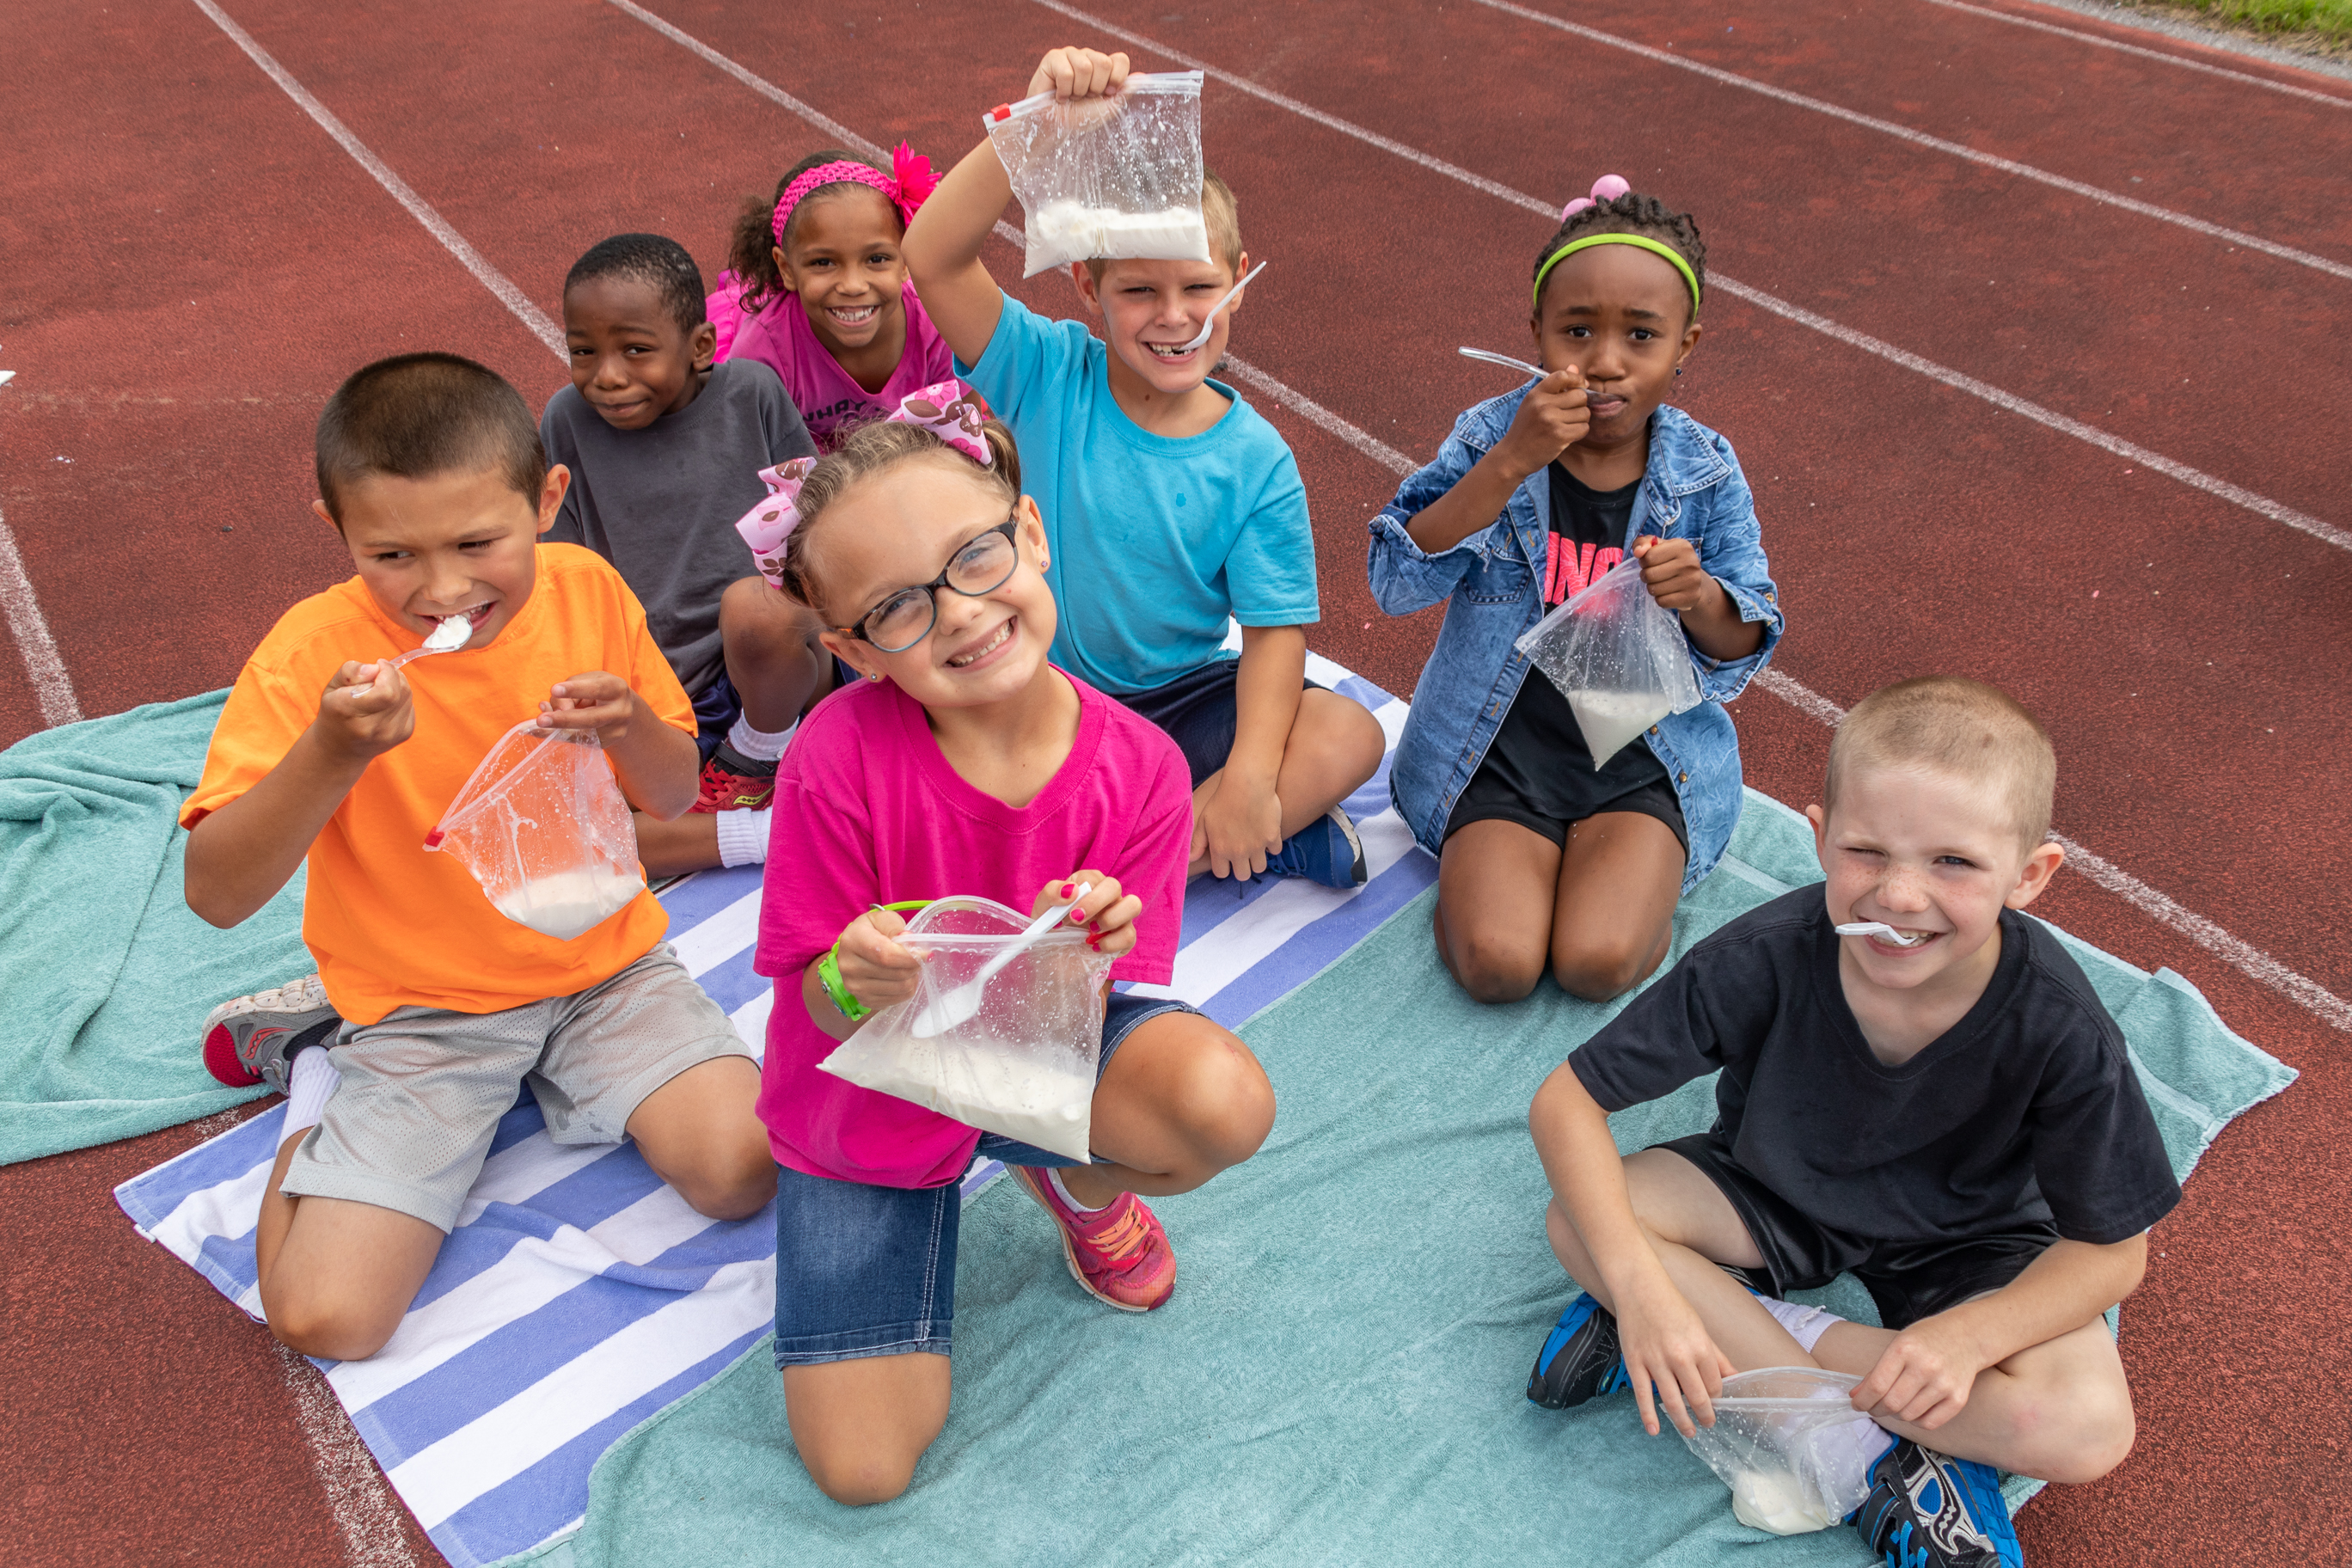 Elementary students made their own ice cream